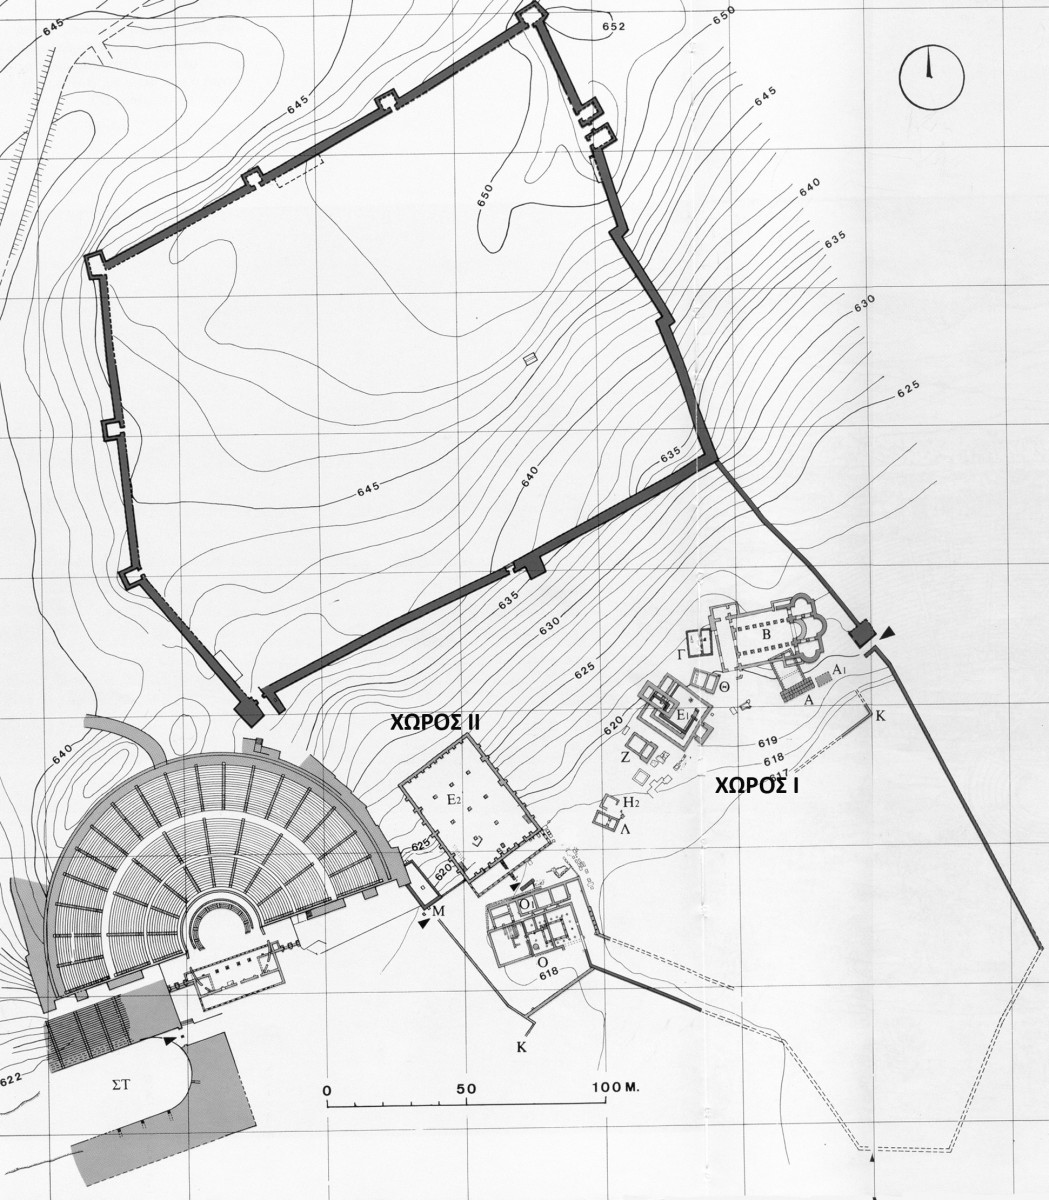 Fig. 10. Plan of the archaeological site of Dodoni marking areas I and II. (source: archives of the Ephorate of Antiquities, Ioannina)